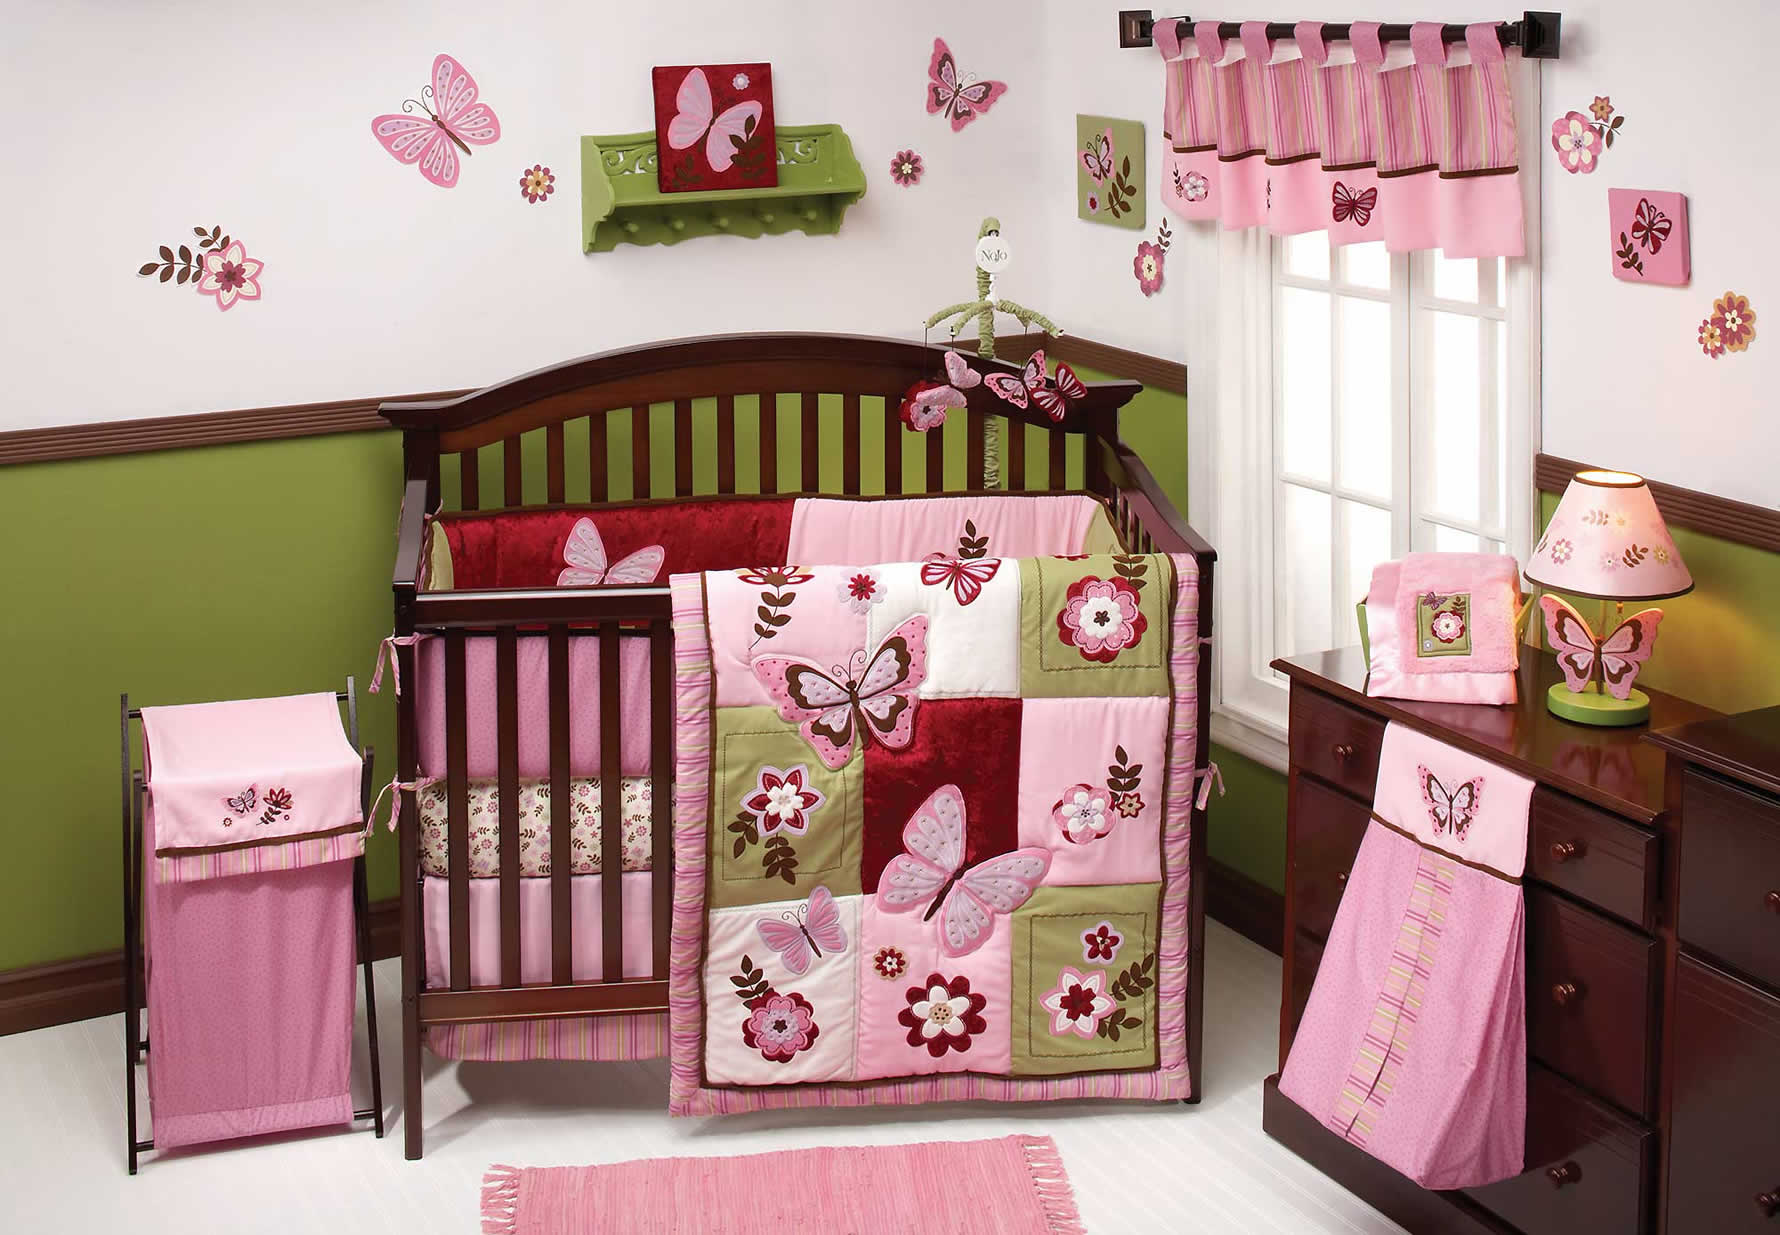 Baby Bedroom Set. Marvelous Baby Crib Bedding Bedroom Sets at Home and Interior Design Ideas